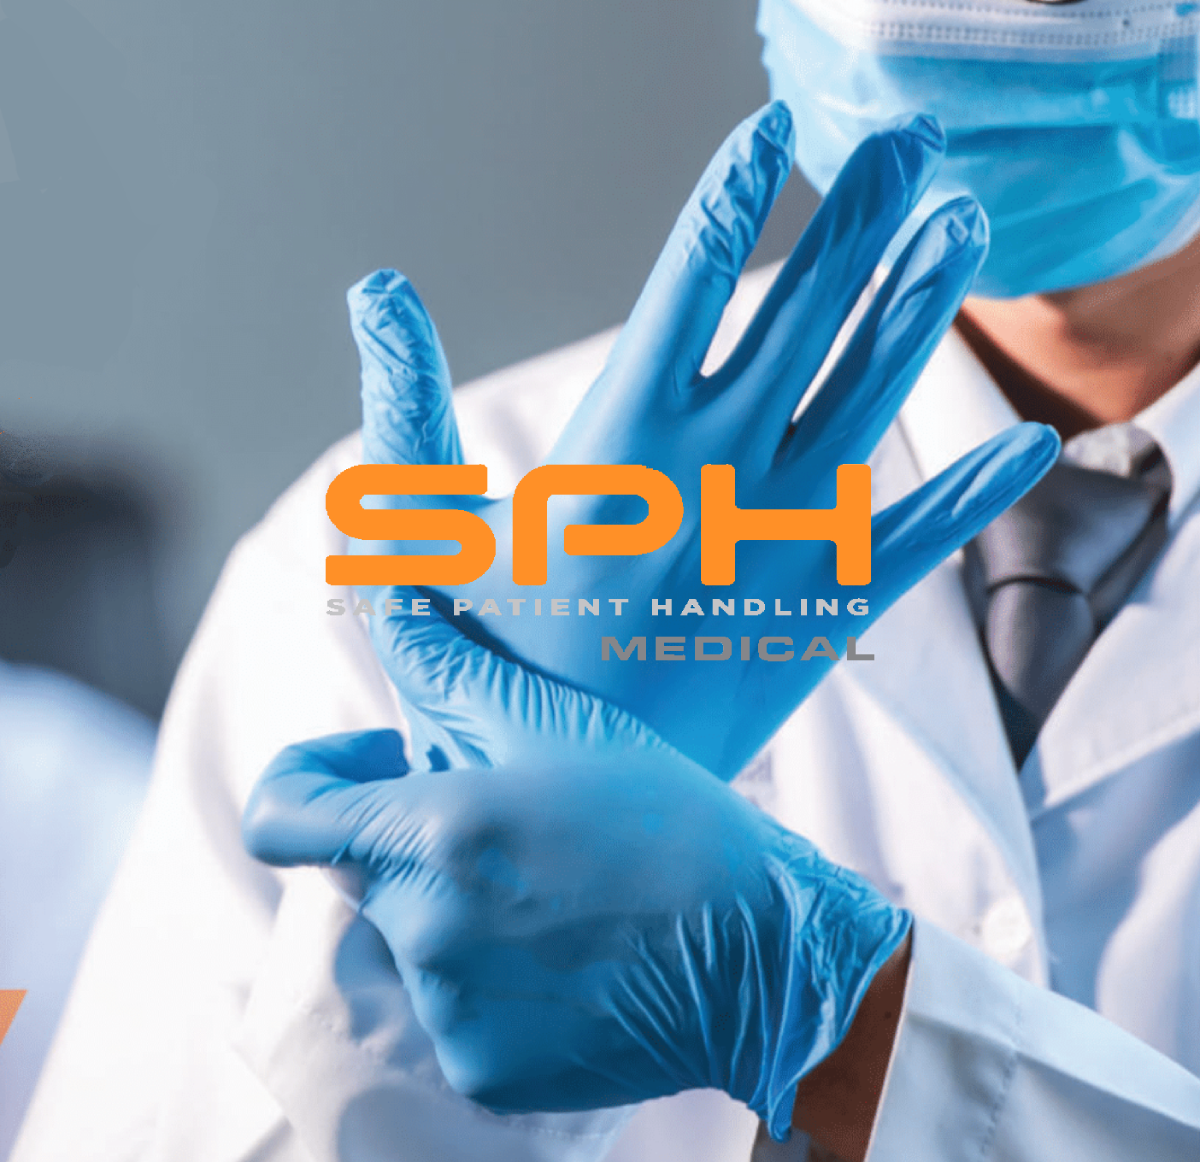 SPH Medical Chemo Tested Gloves Protect Nurses